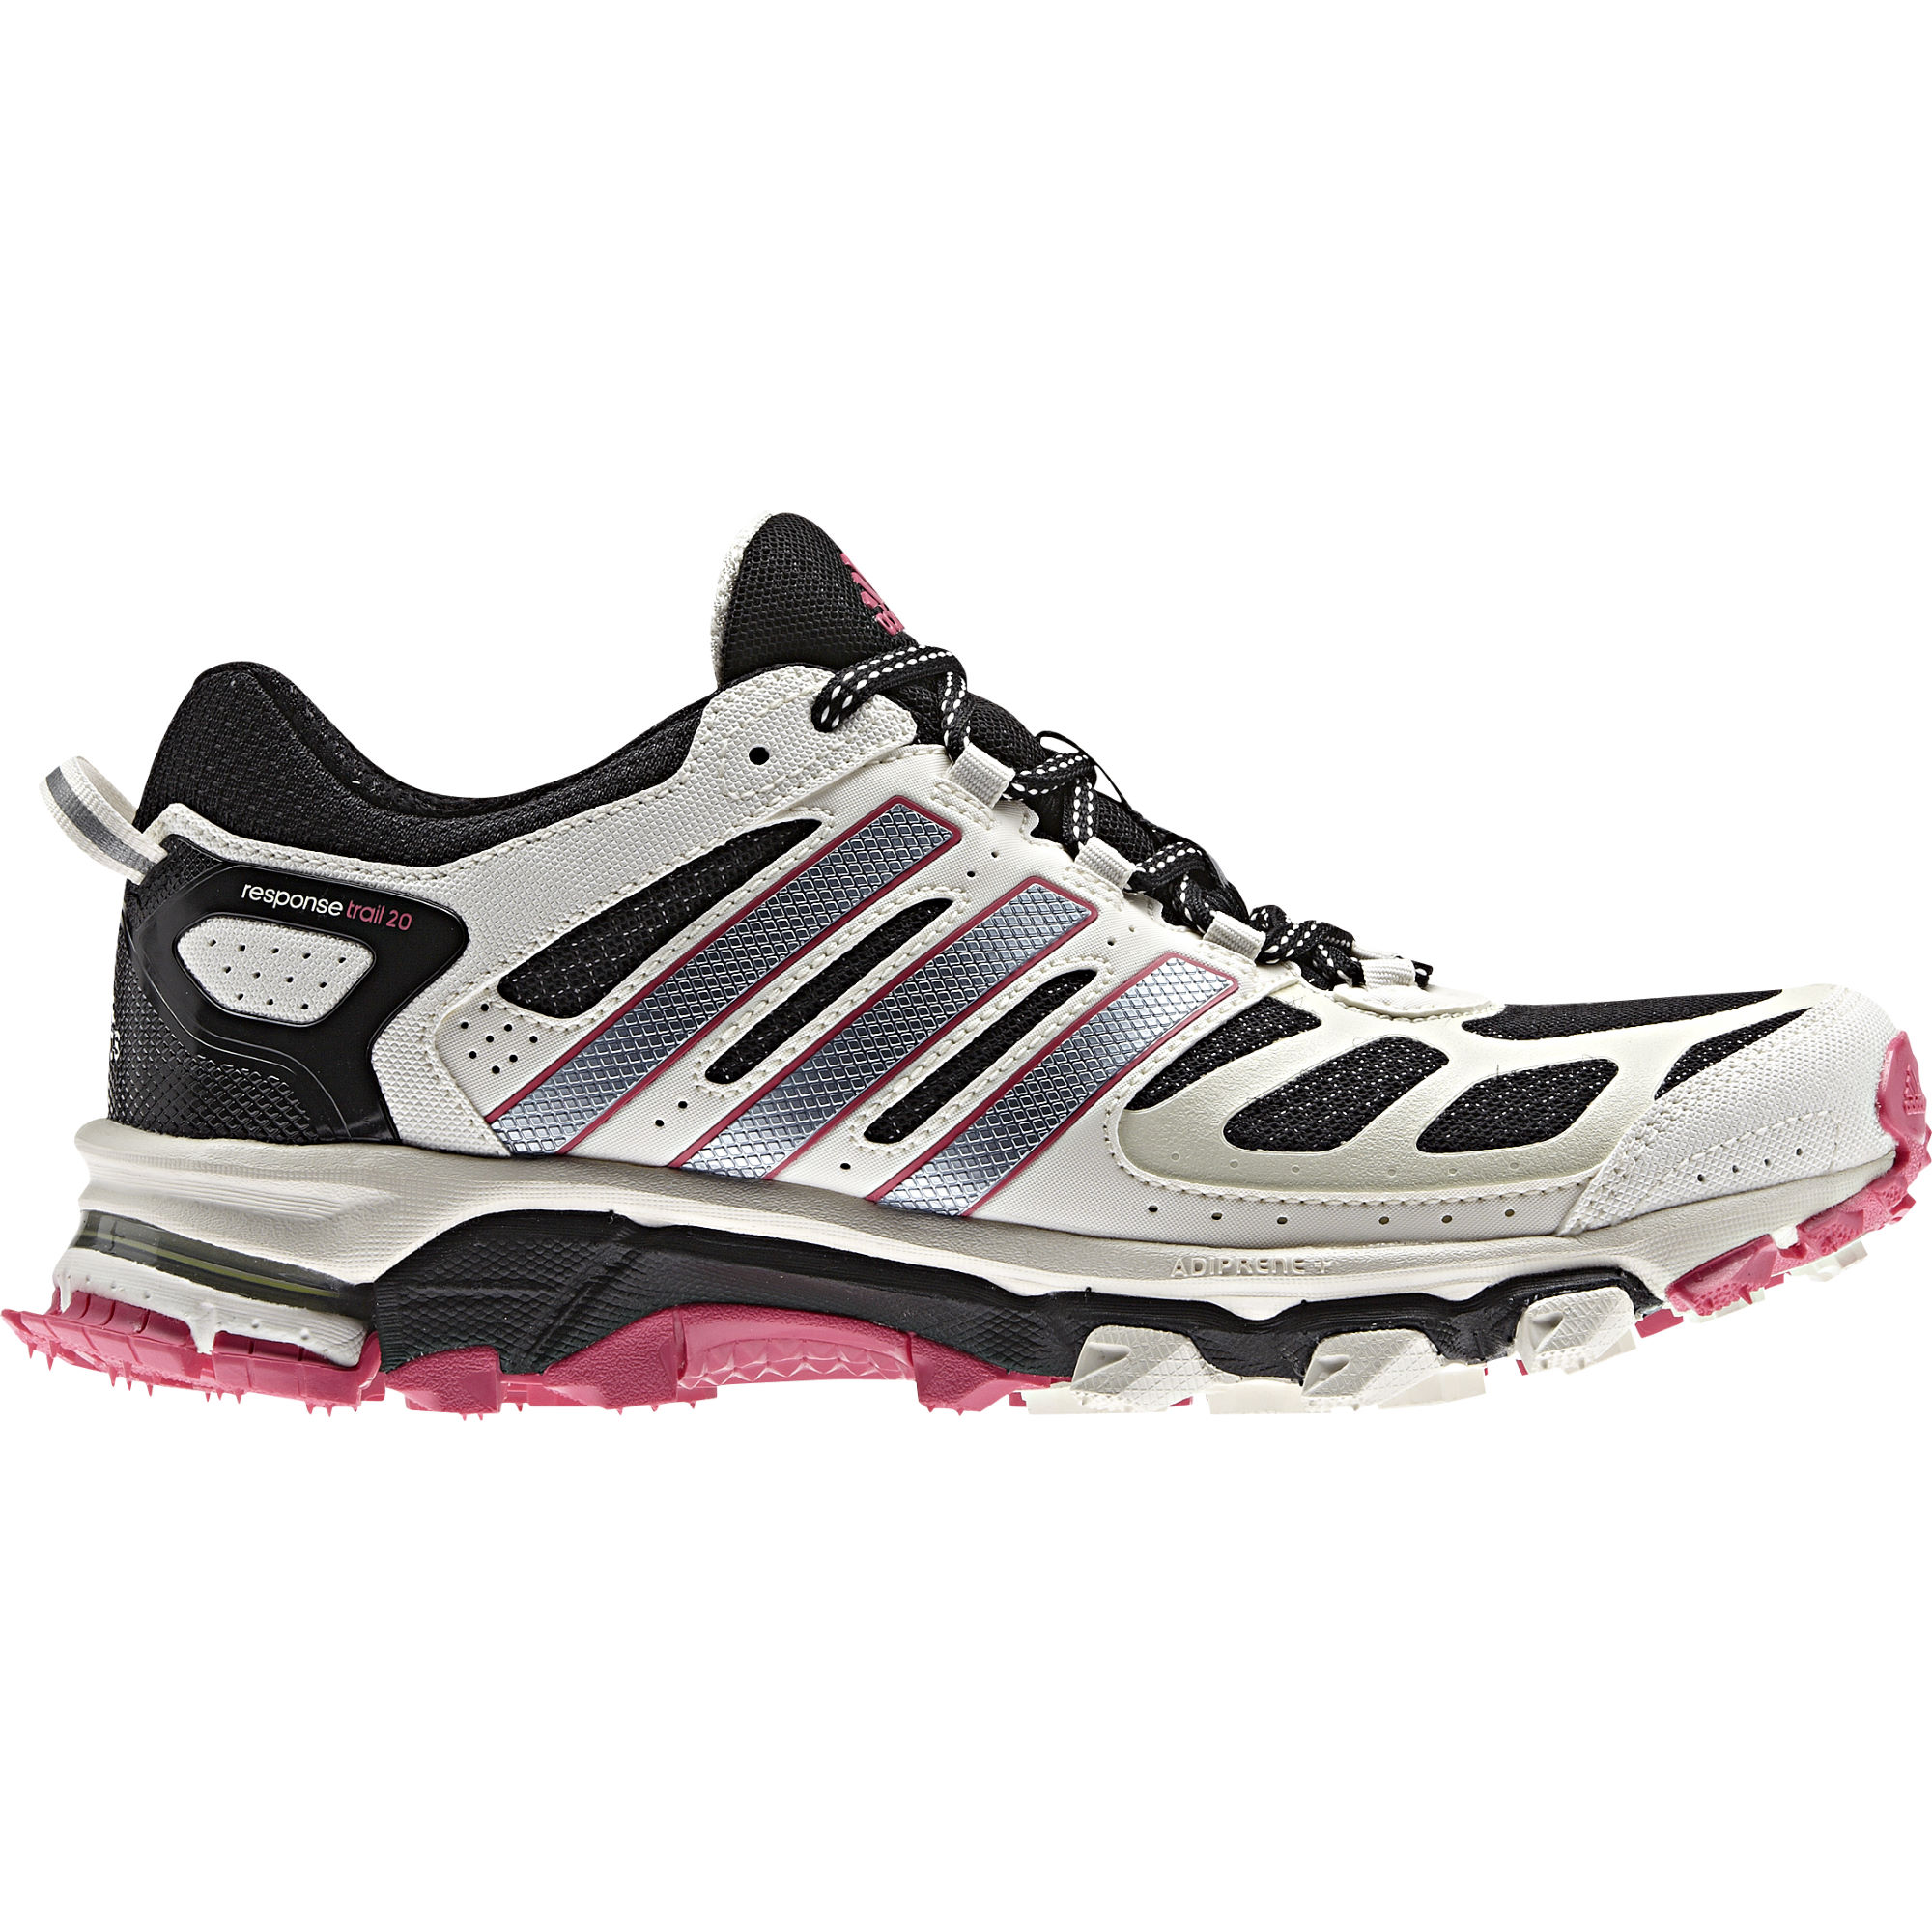 chaussures de running trail adidas women 39 s response trail 20 shoes ss14 wiggle france. Black Bedroom Furniture Sets. Home Design Ideas